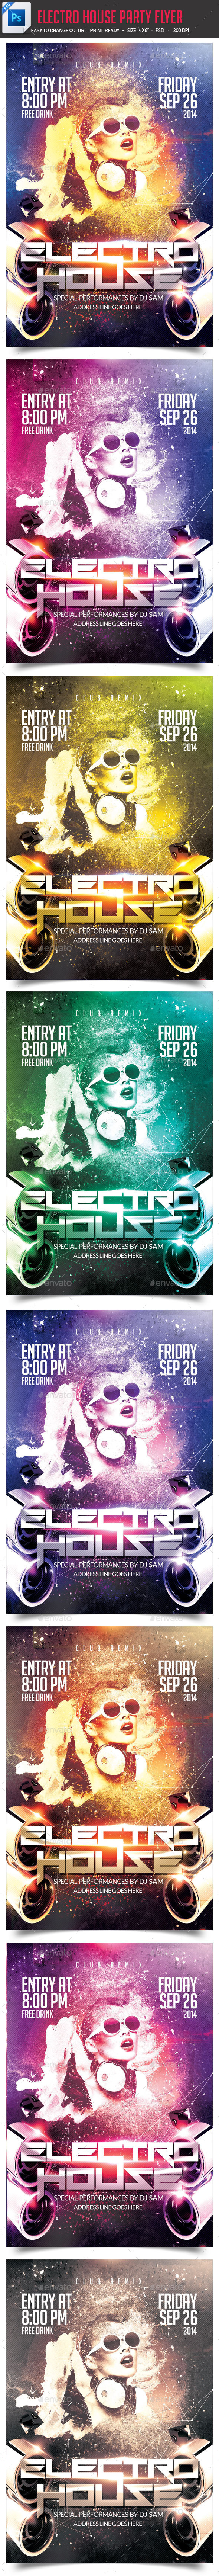 Electro House Party Flyer - Clubs & Parties Events